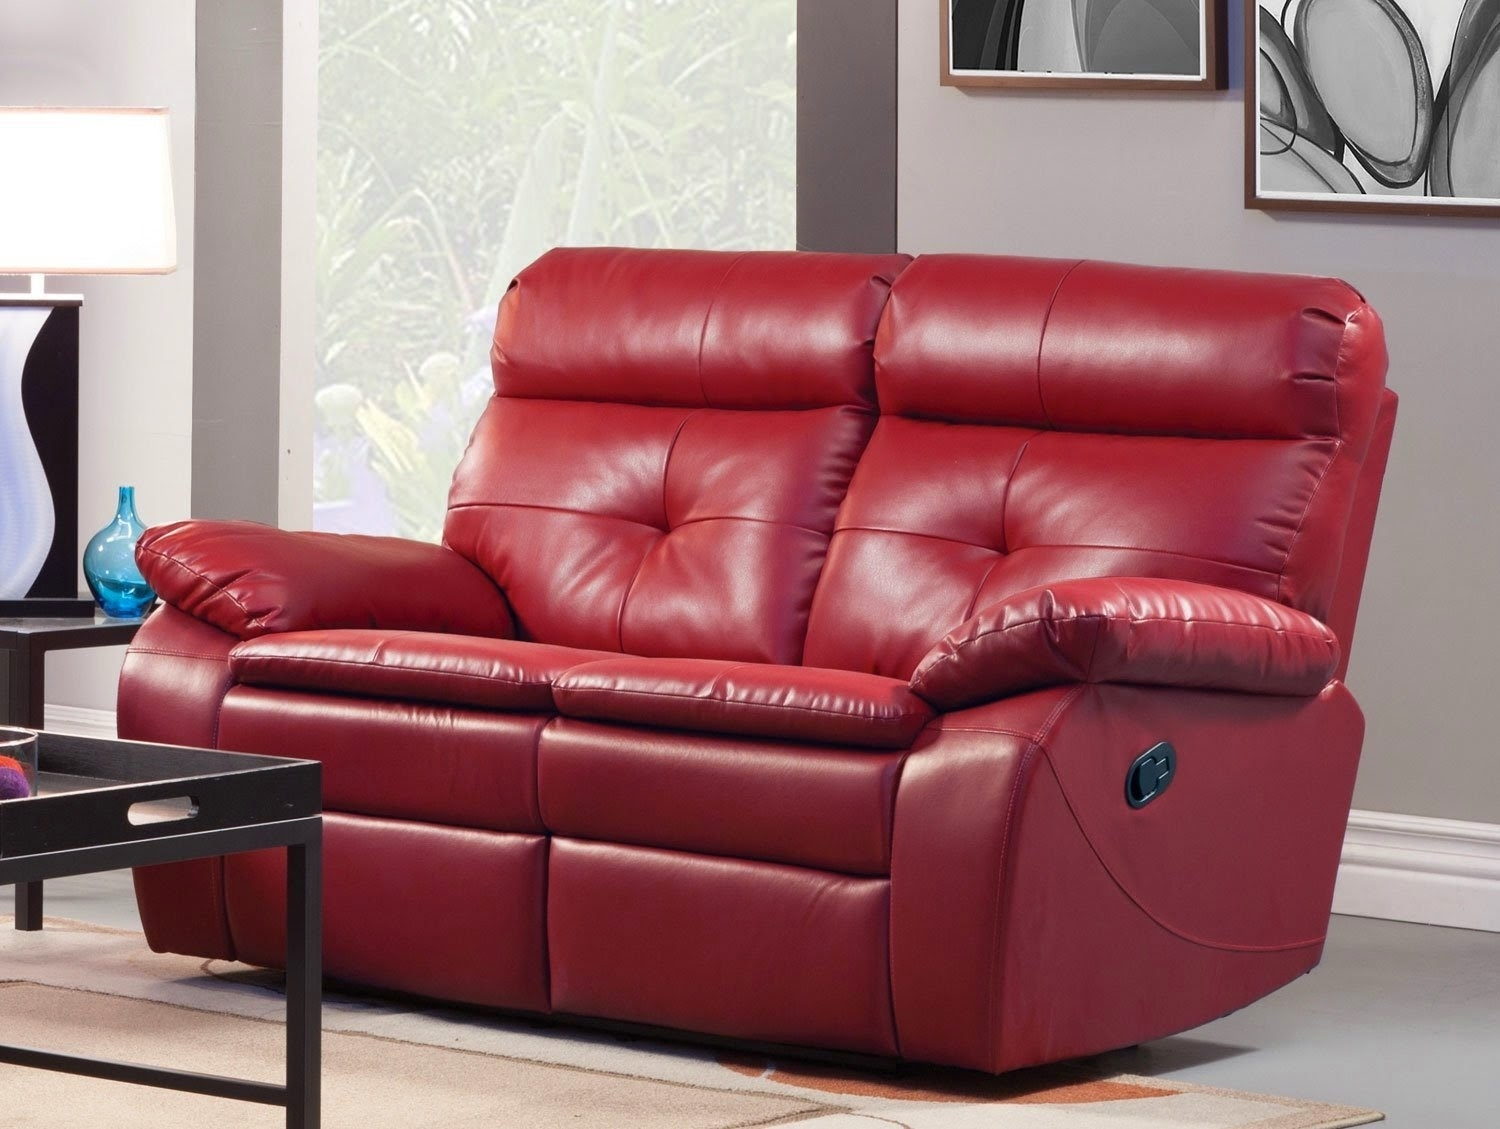 Good Red Leather Reclining Sofa And Loveseat 71 Sofa Design Ideas For Red Leather Reclining Sofas And Loveseats (Image 3 of 10)